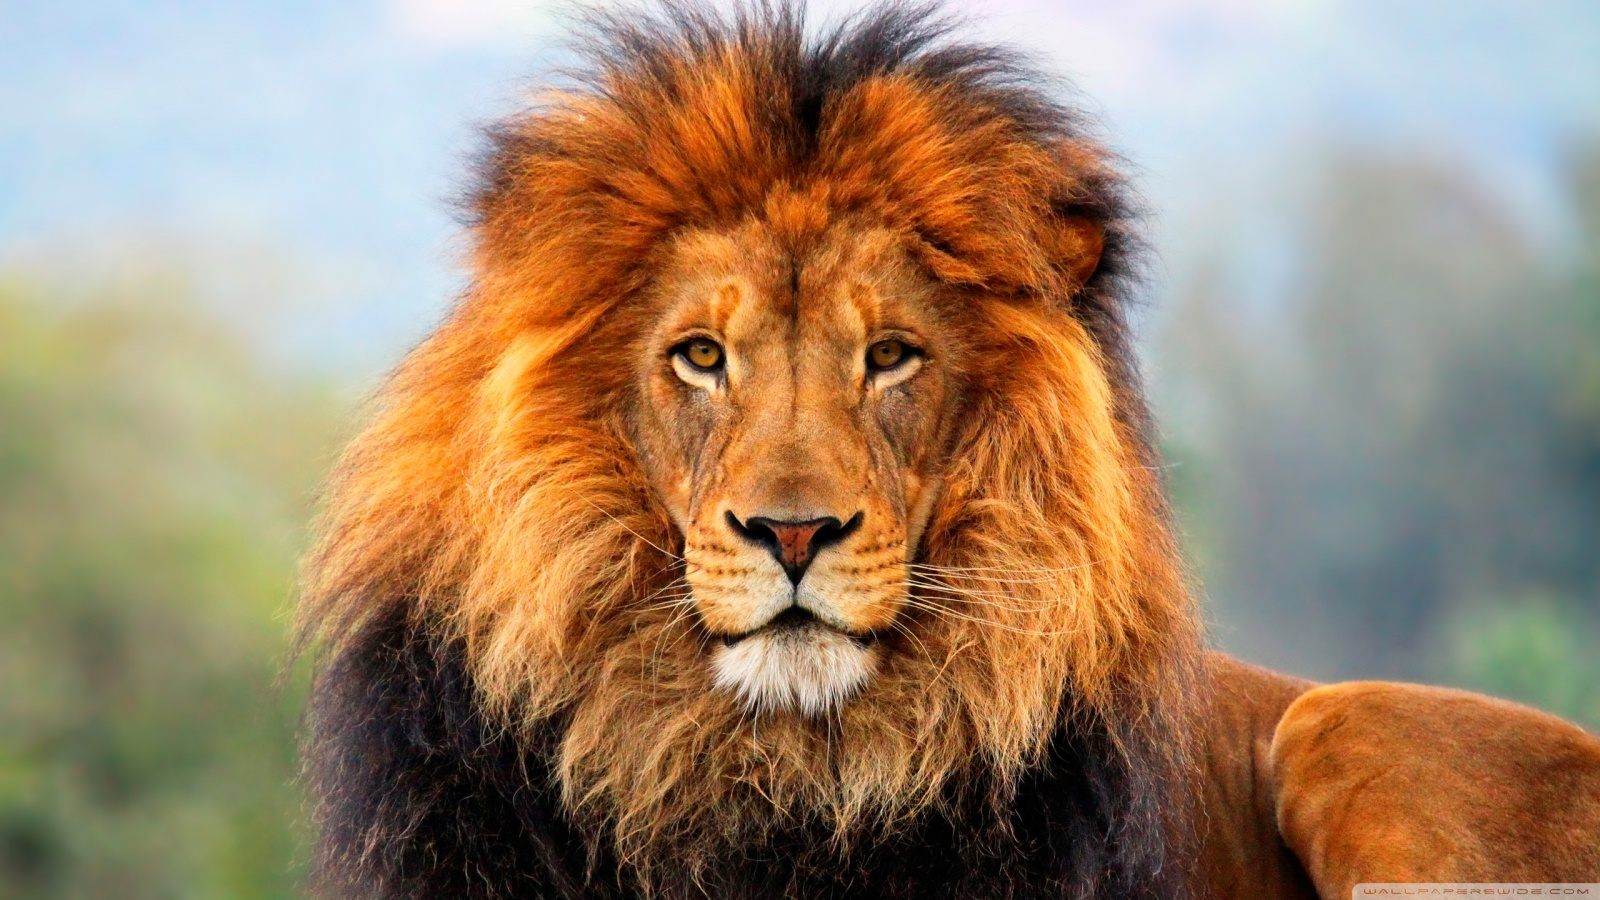 Lion Pictures HD Wallpapers Lion - HD Animal Wallpapers